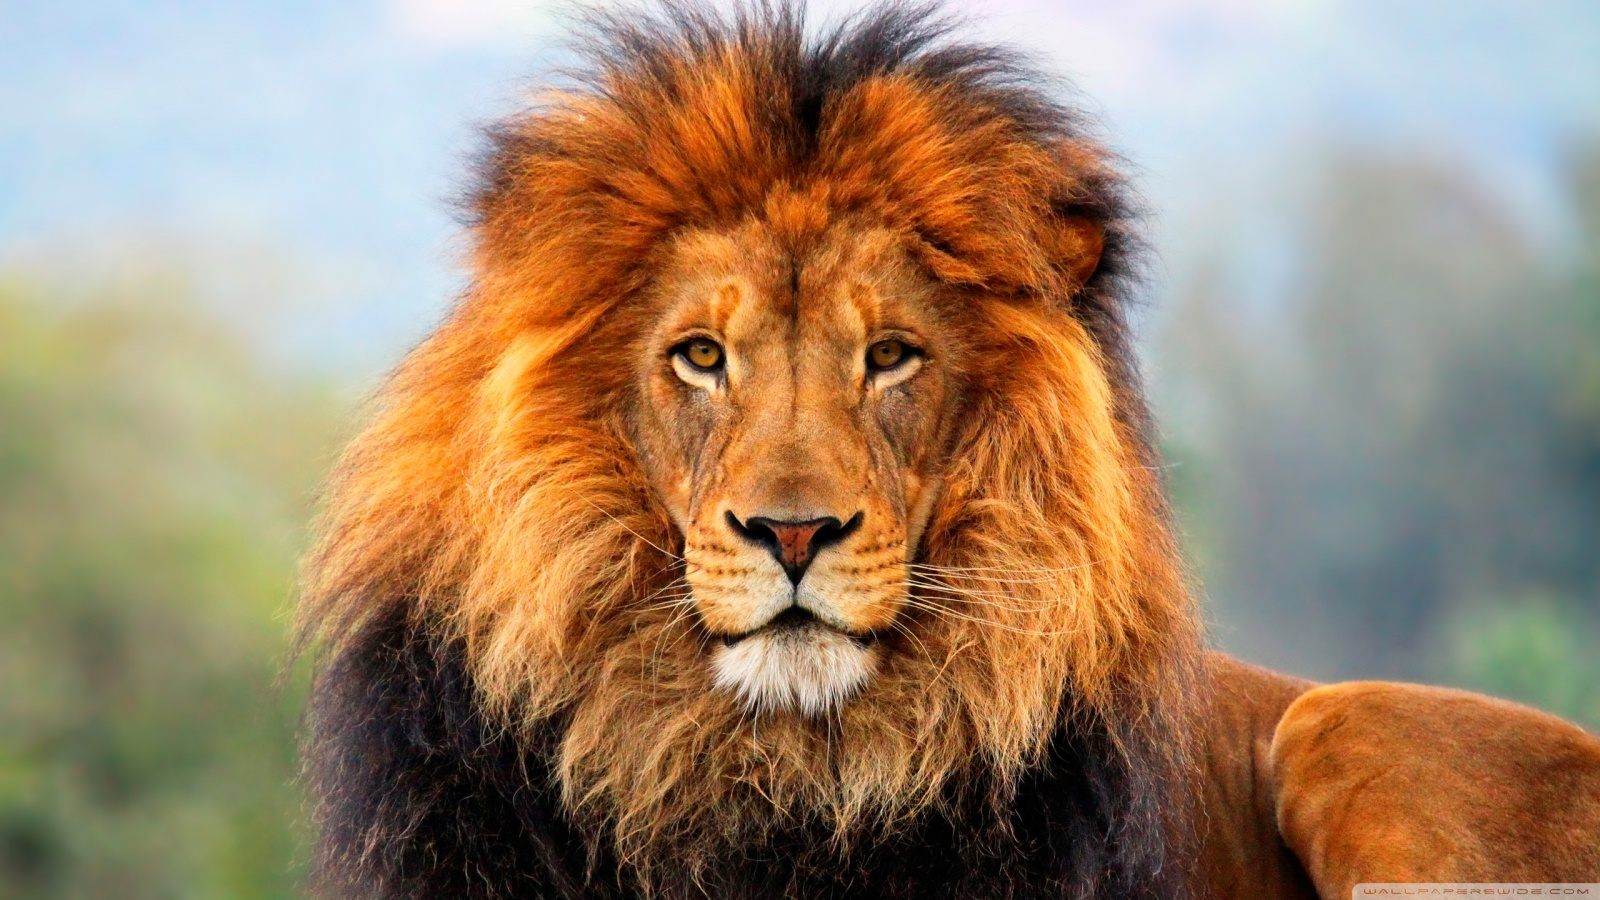 Lion Pictures HD Wallpapers Lion - HD Animal Wallpapers